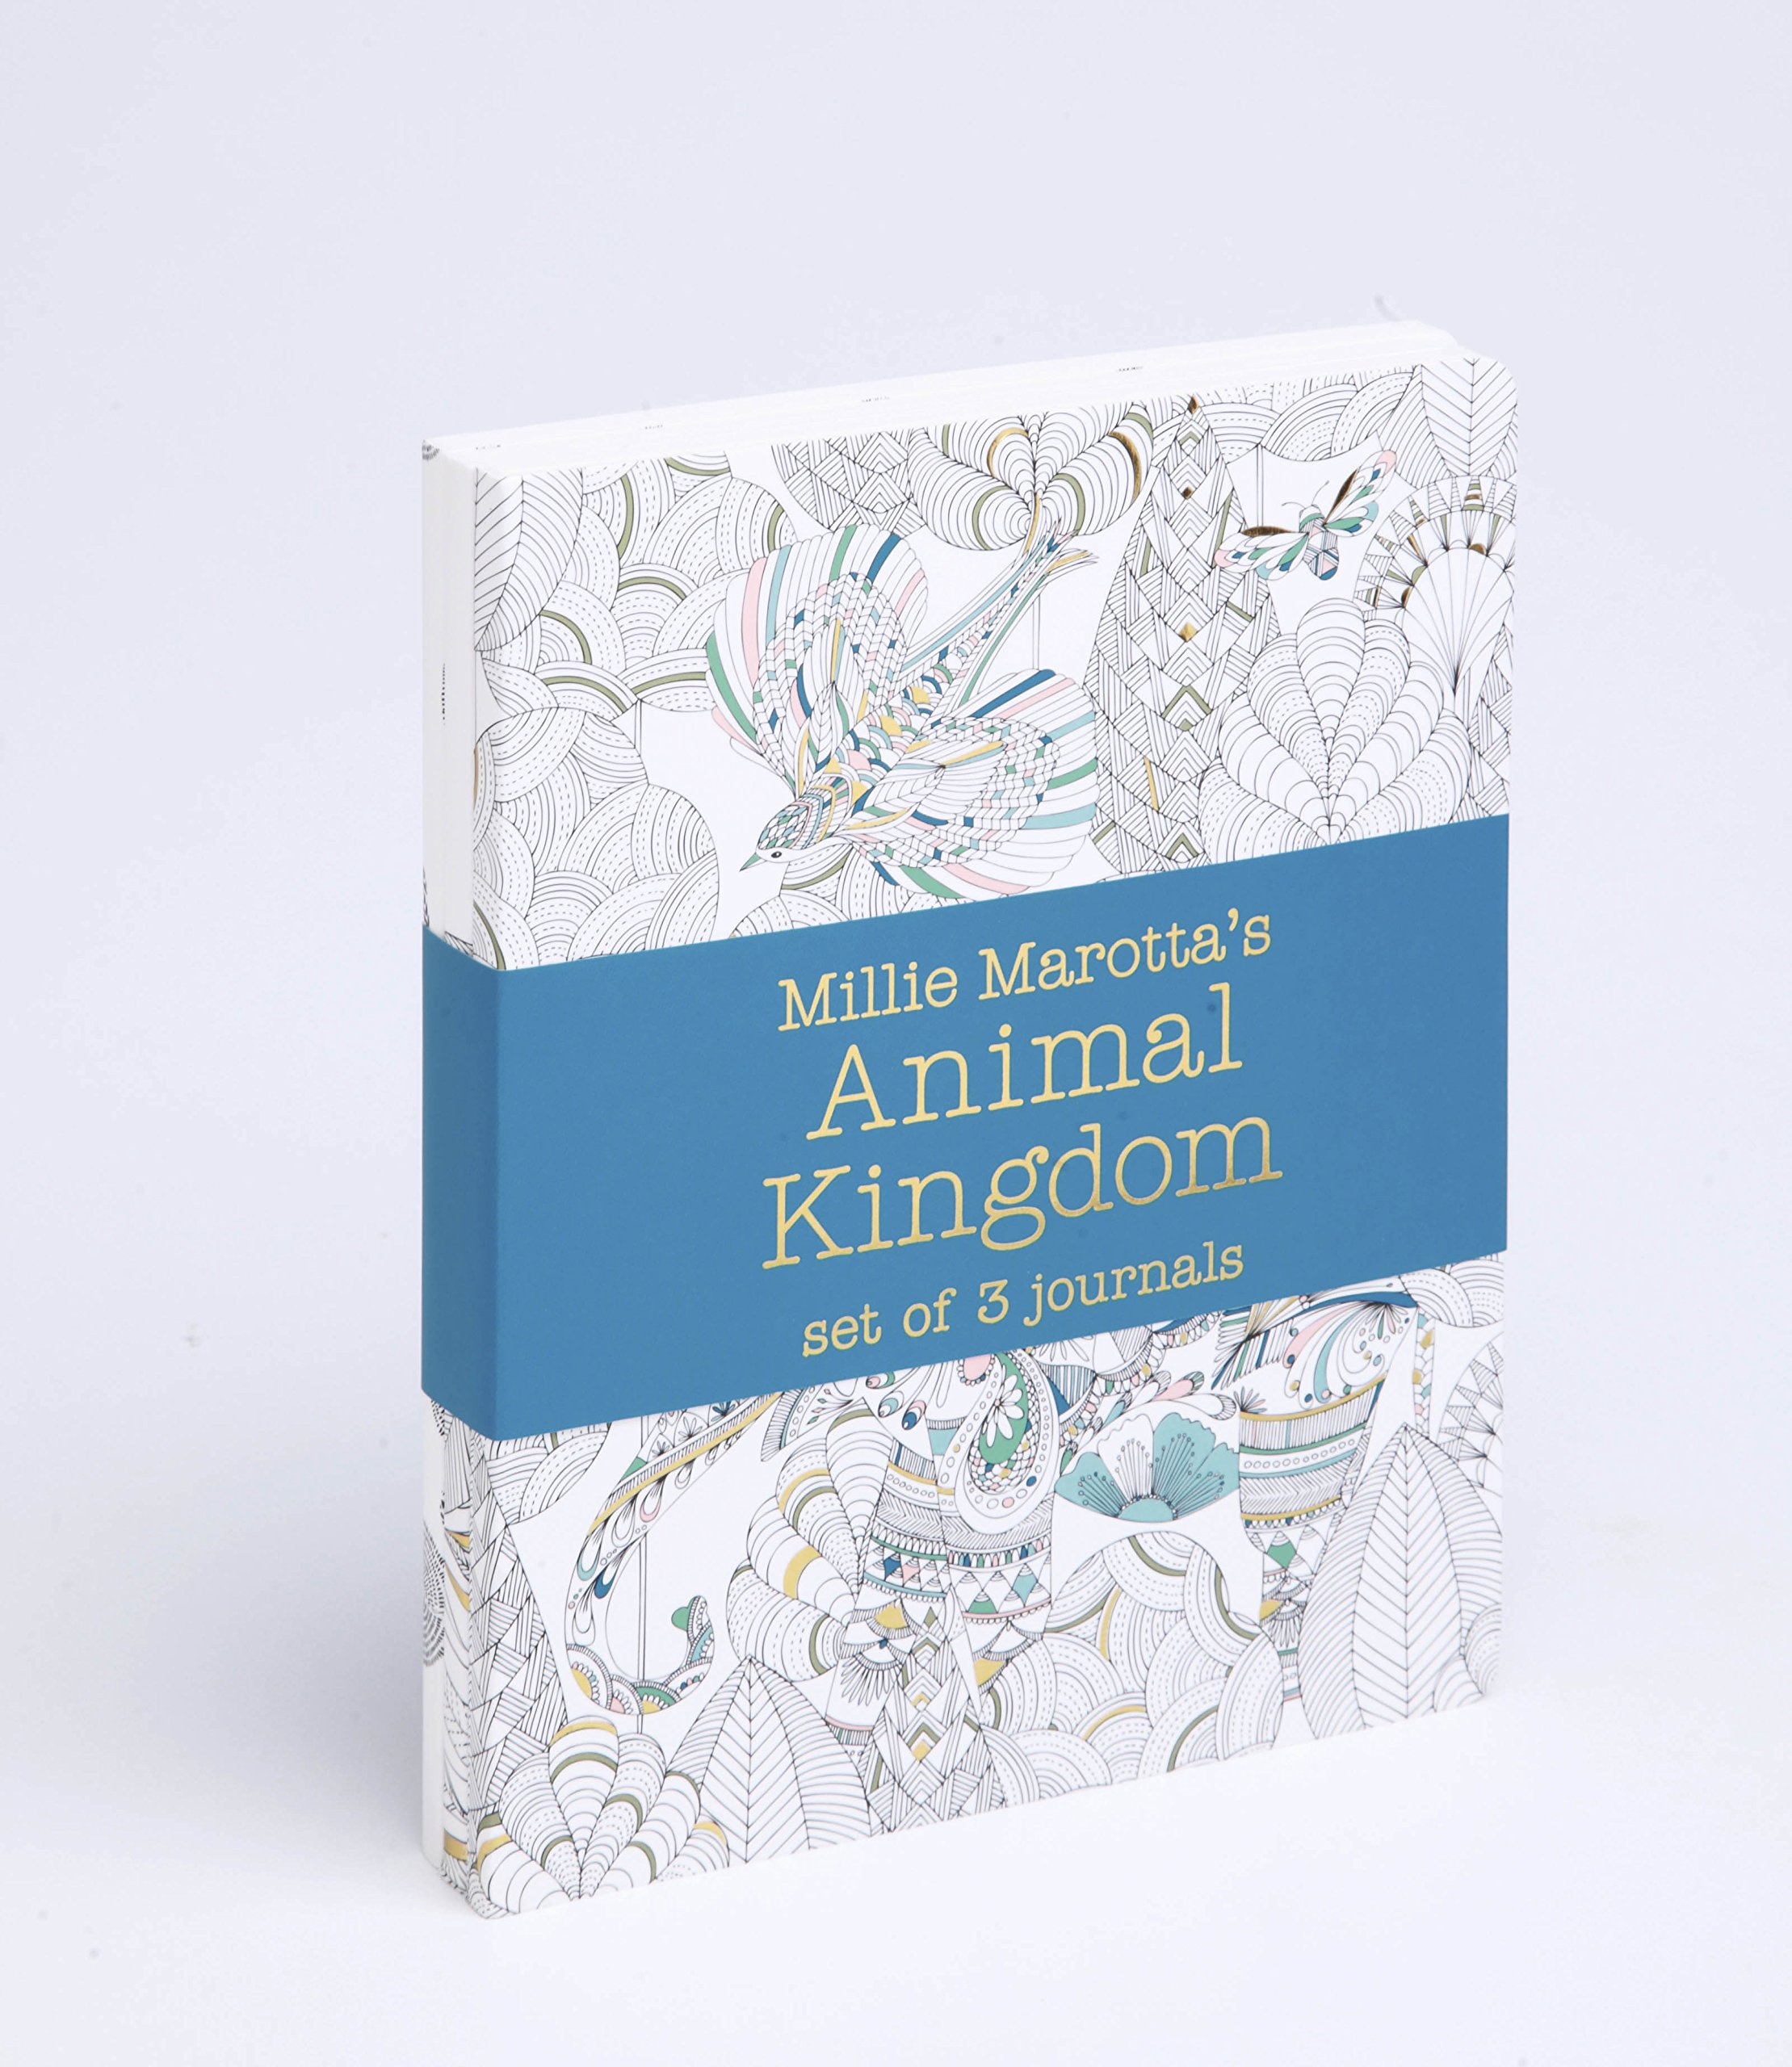 Millie Marottas Animal Kingdom Journal Set Amazoncouk Marotta 9781849942911 Books